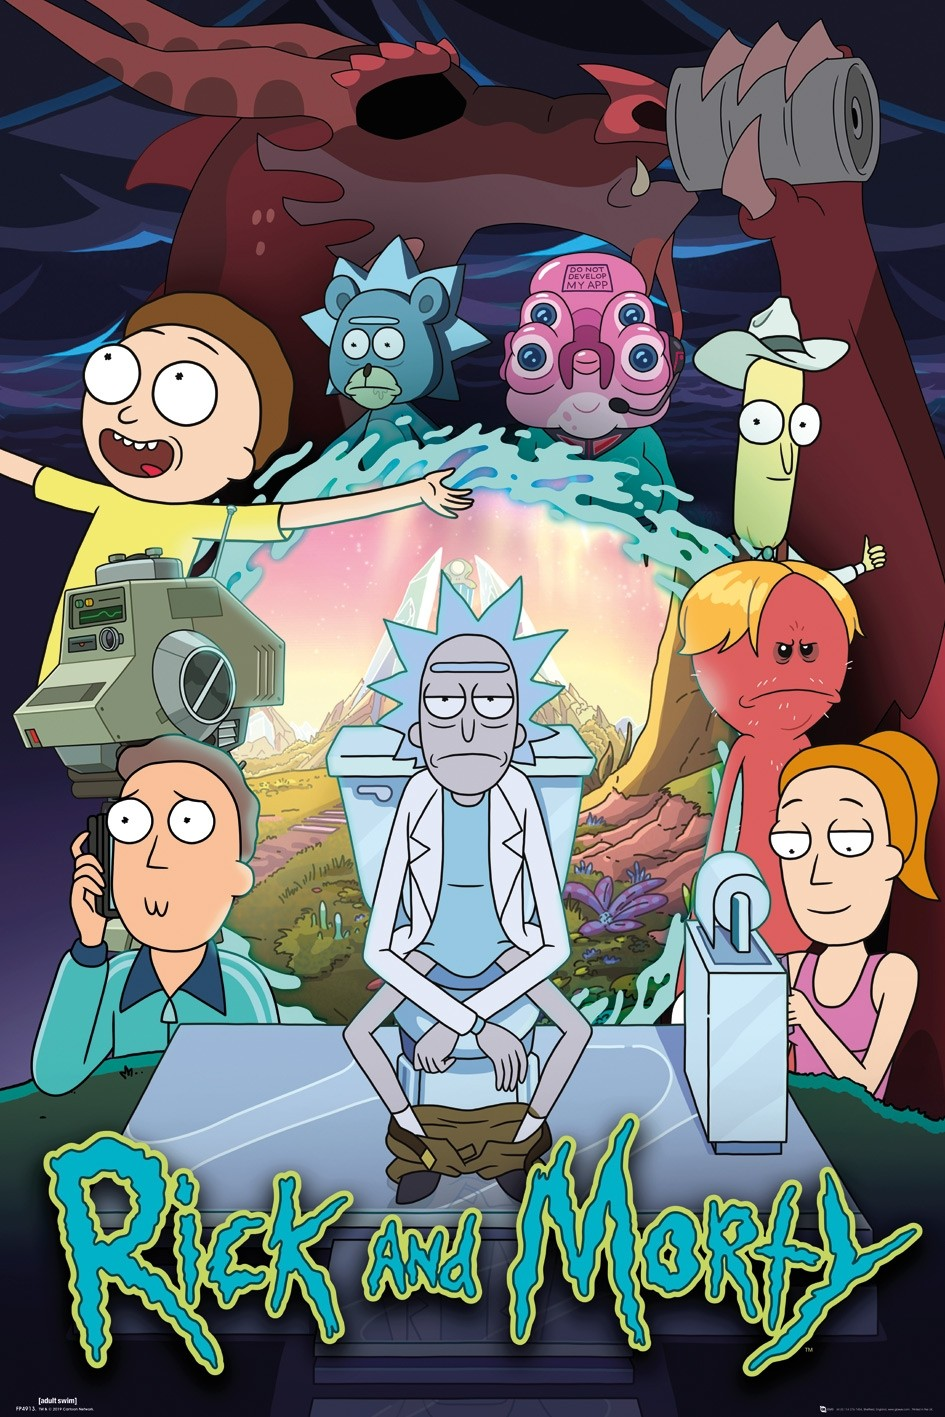 Rick and Morty   S04   Sub-Esp   1080p   x265 Image-search-1591667503961